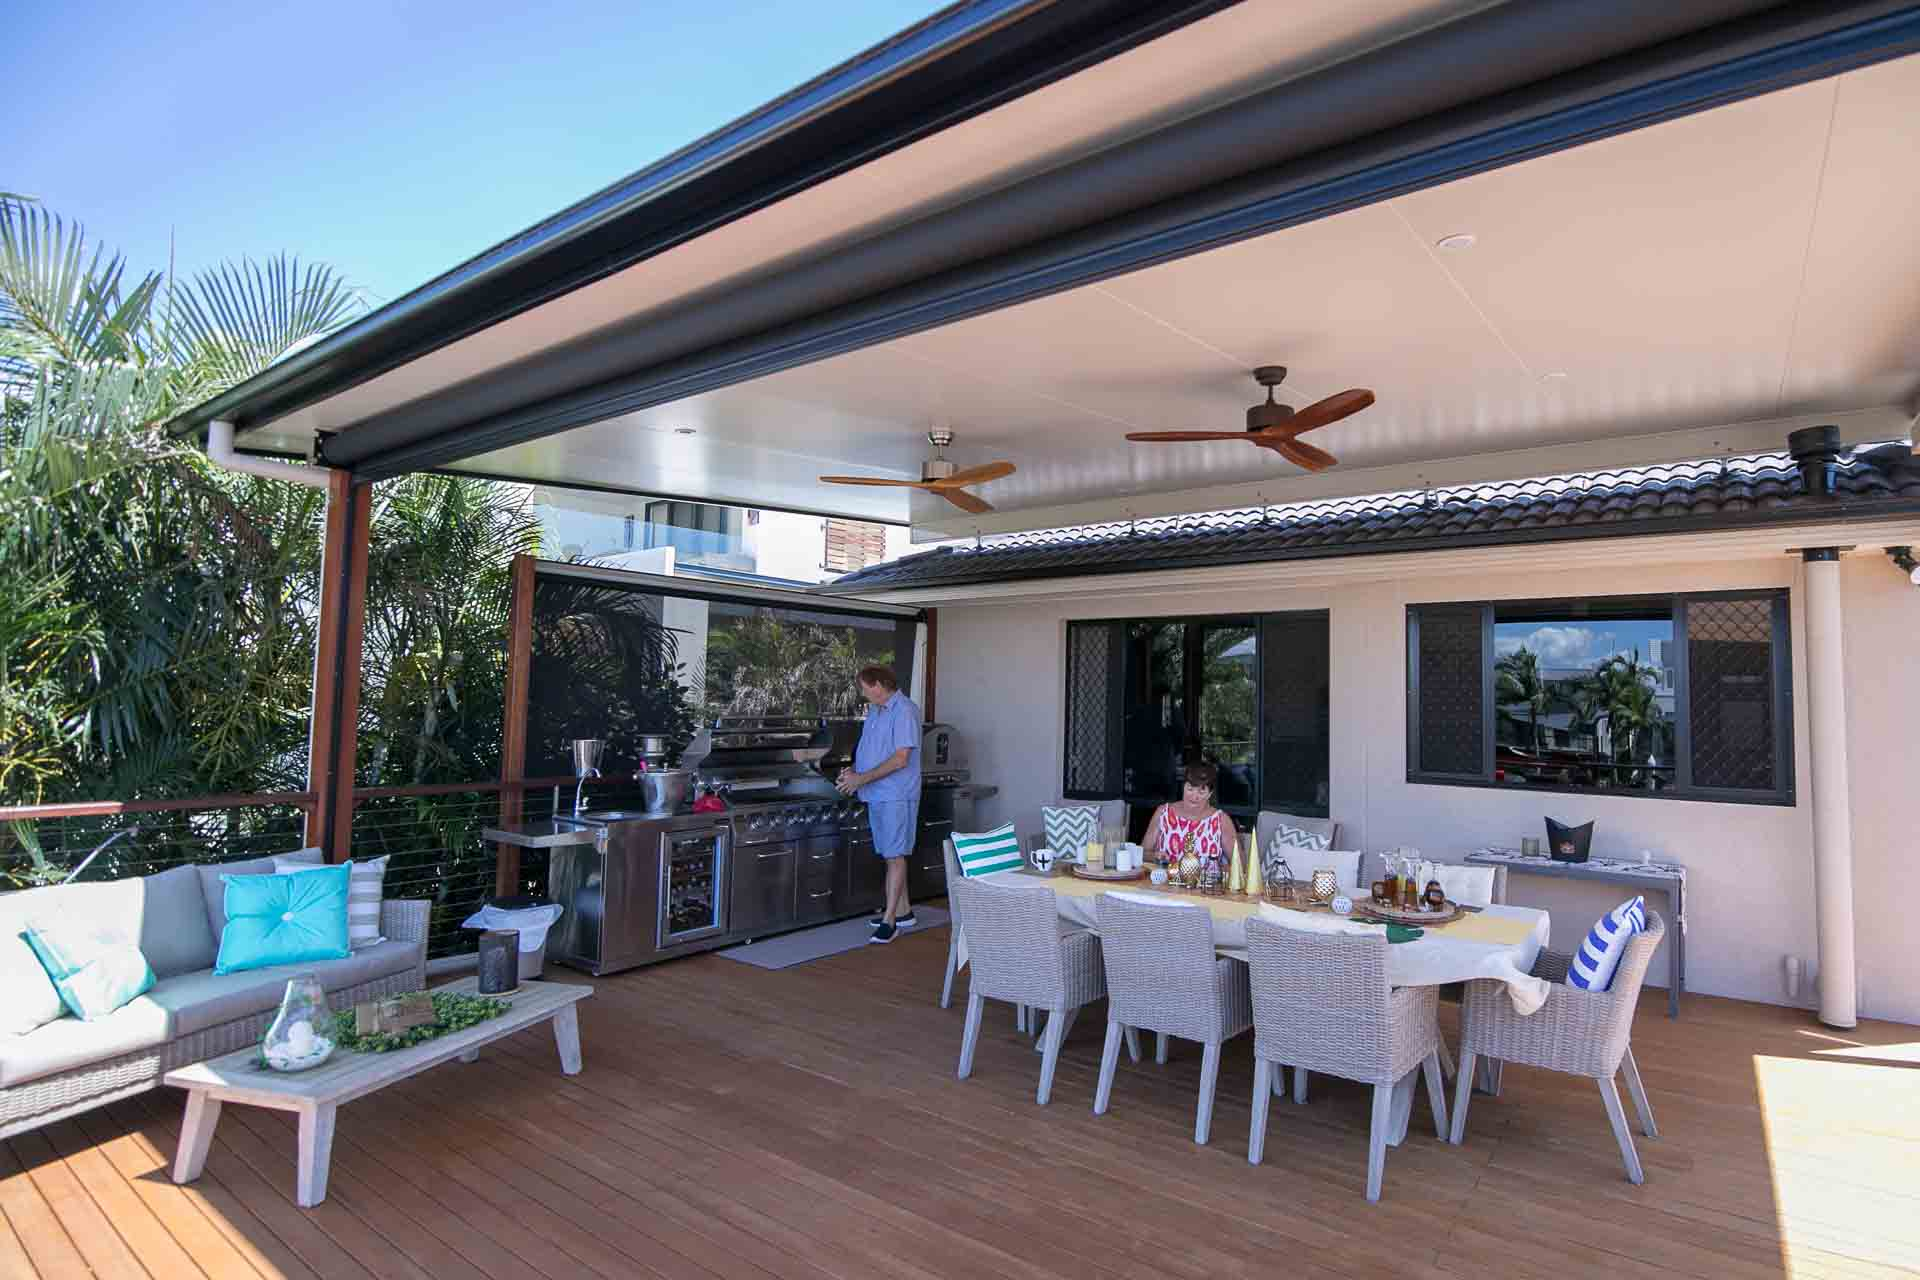 How to create the ultimate BBQ area - Cover up with a verandah, patio or pergola, Australian Outdoor Living.